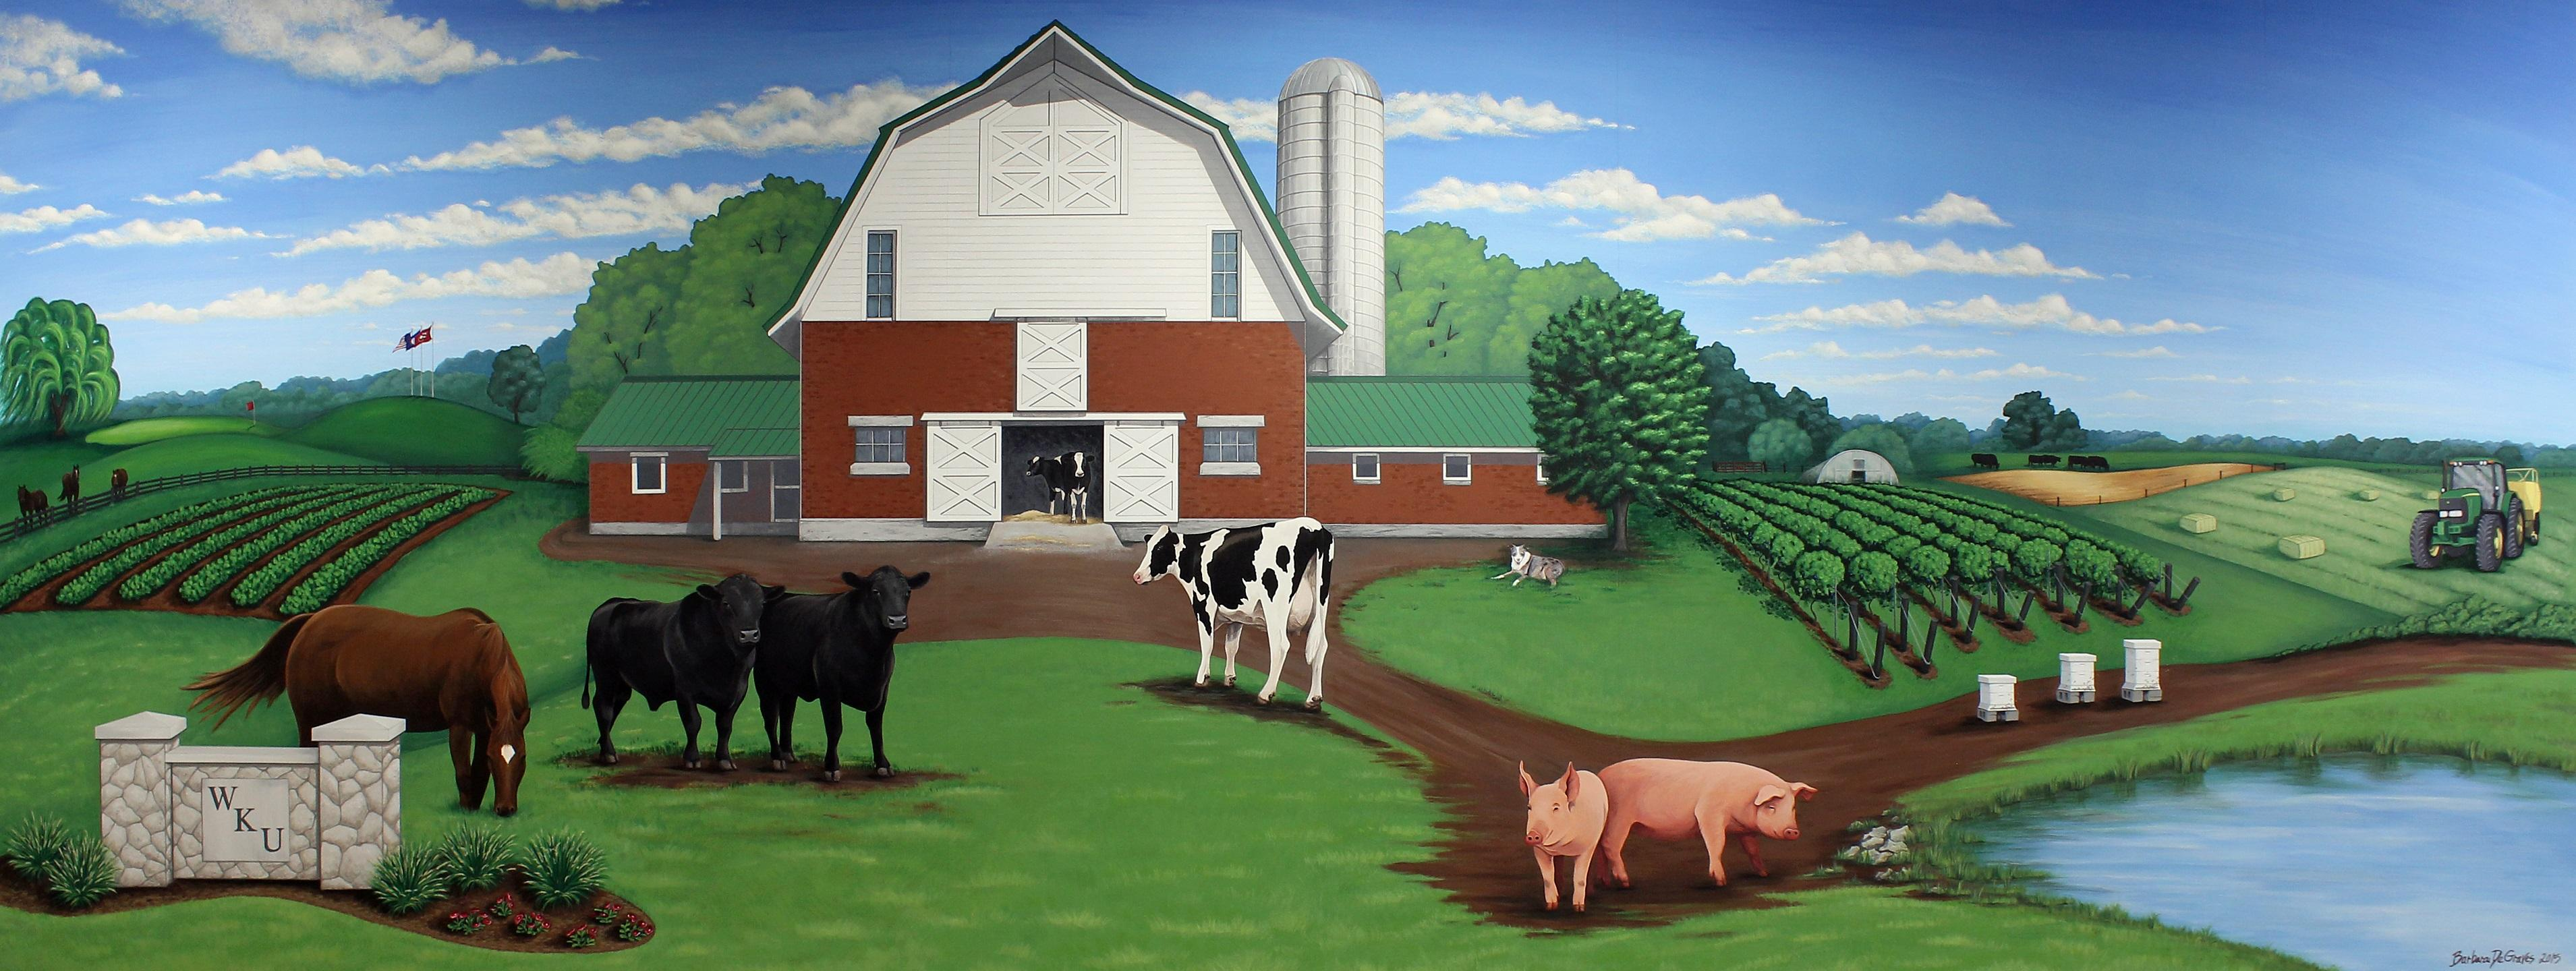 WKU Farm mural by Barb DeGraves